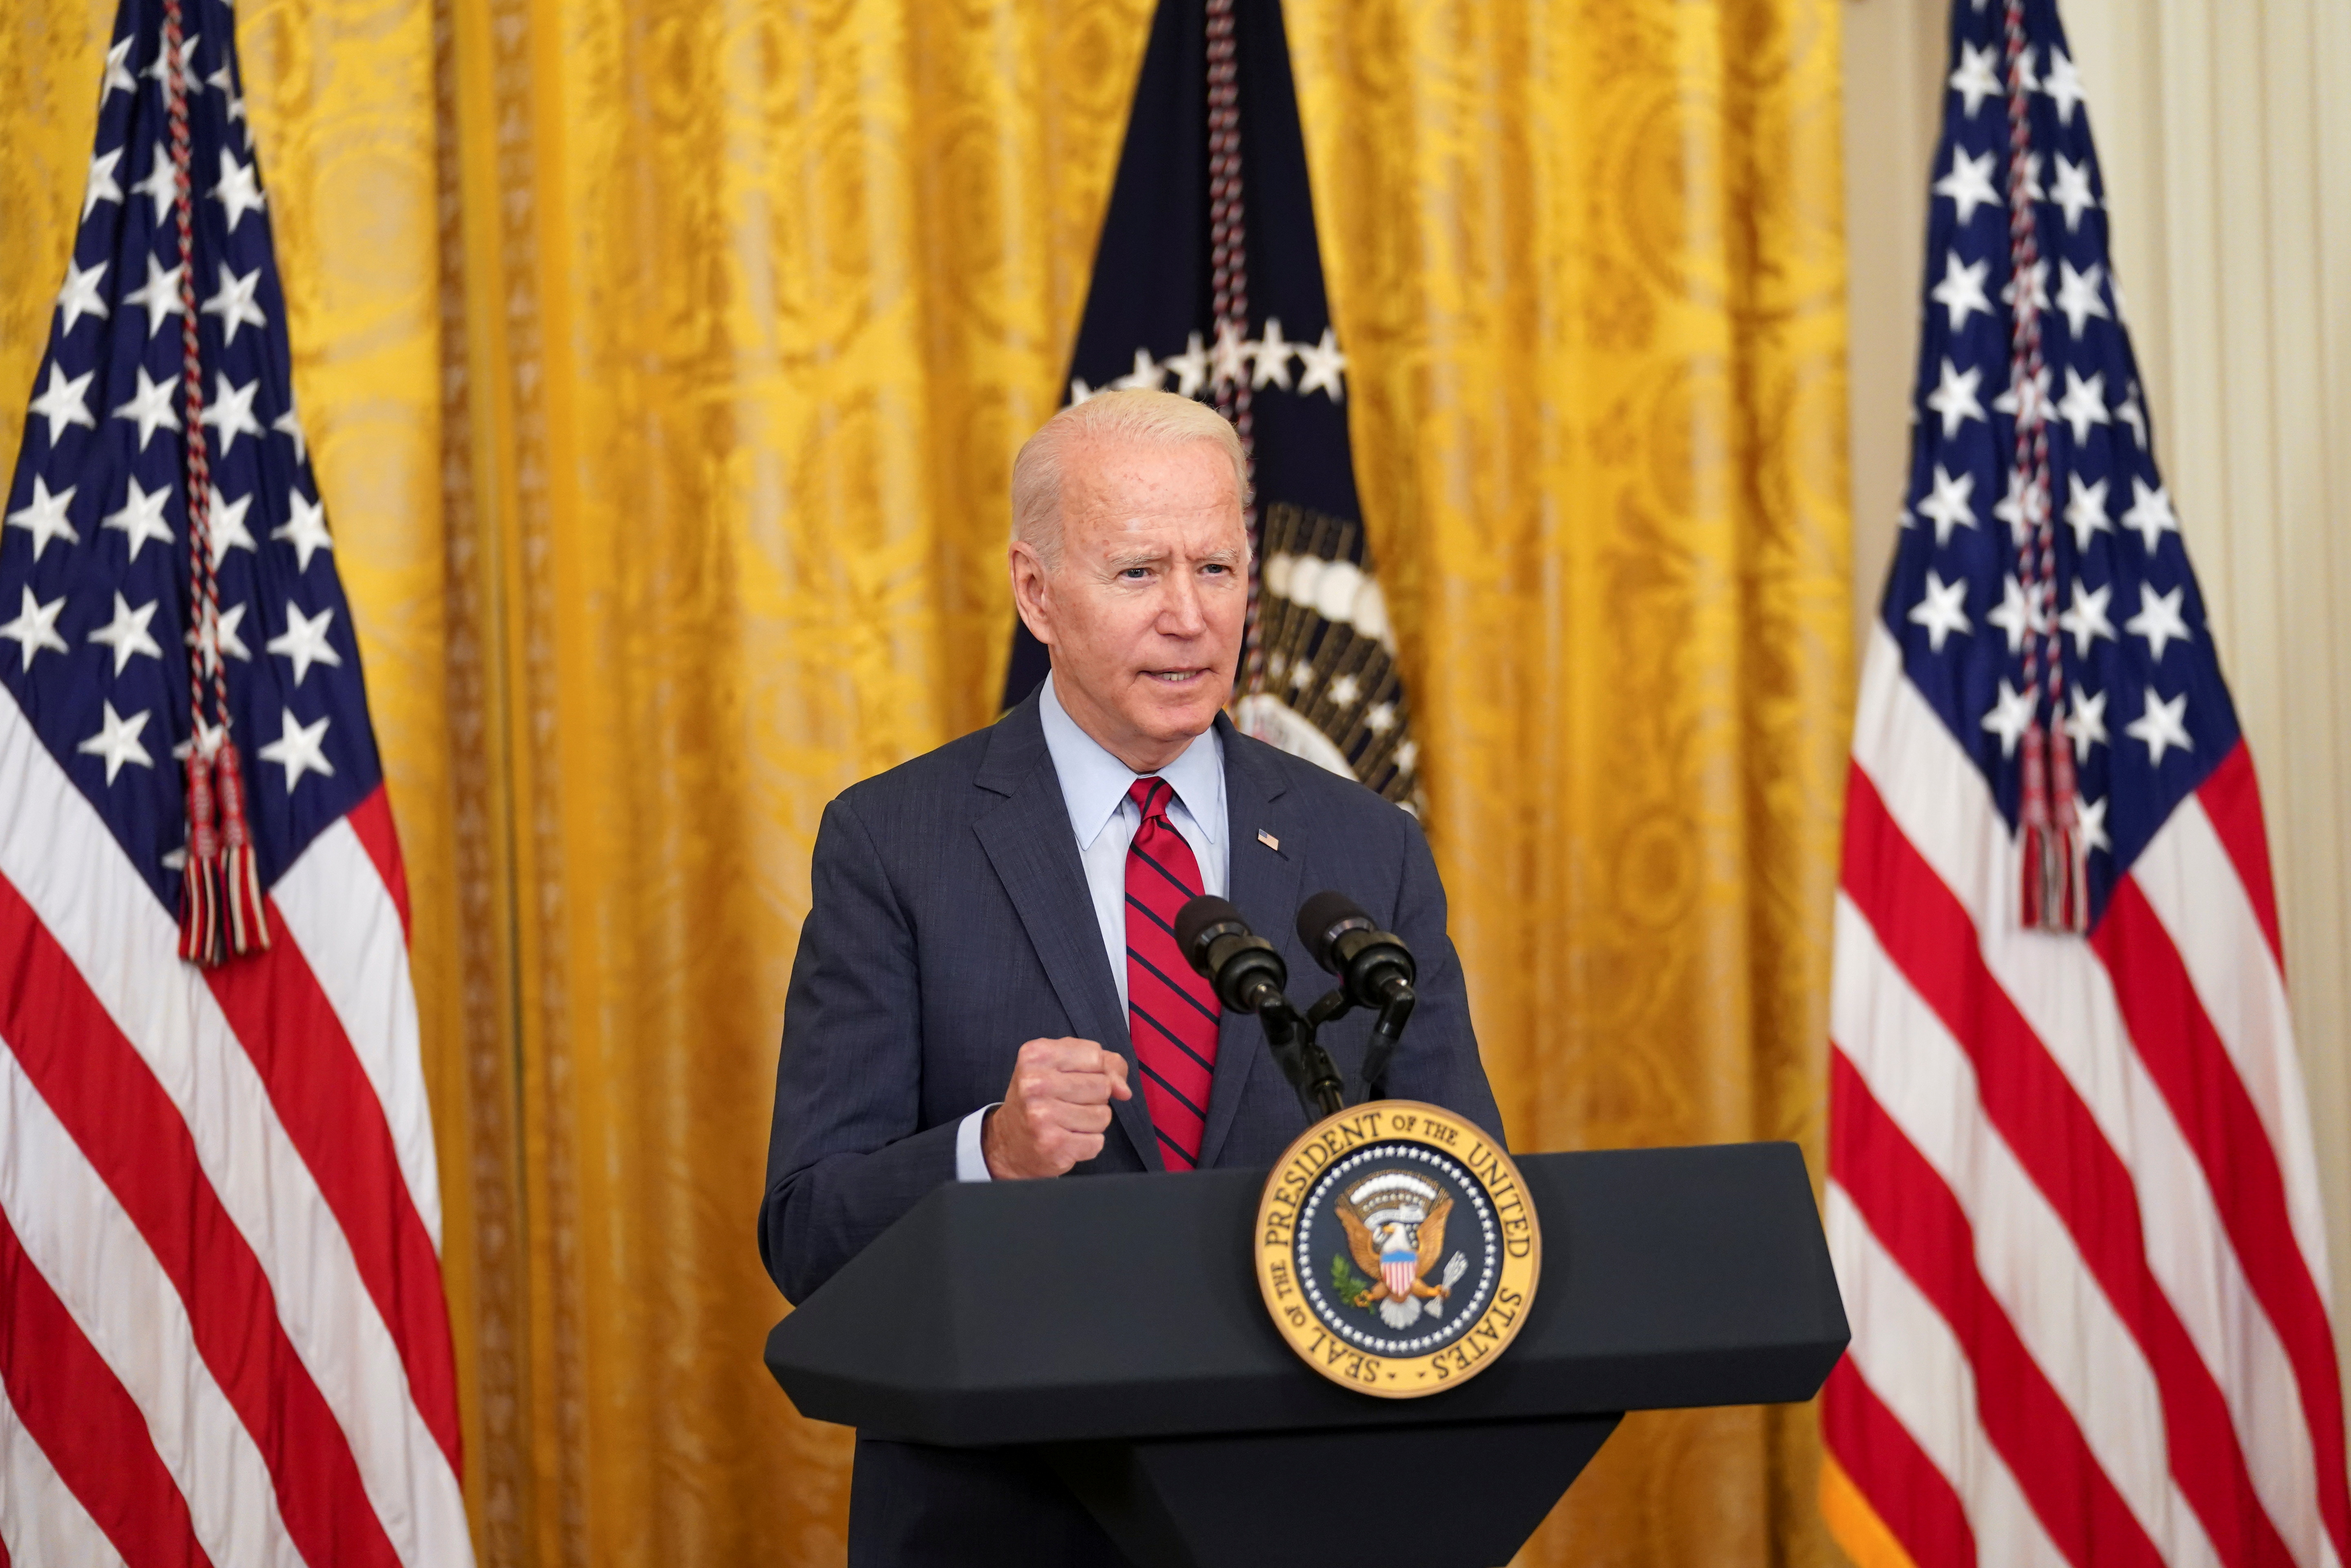 U.S. President Joe Biden delivers remarks on the bipartisan infrastructure deal in the East Room of the White House in Washington, U.S., June 24, 2021. REUTERS/Kevin Lamarque